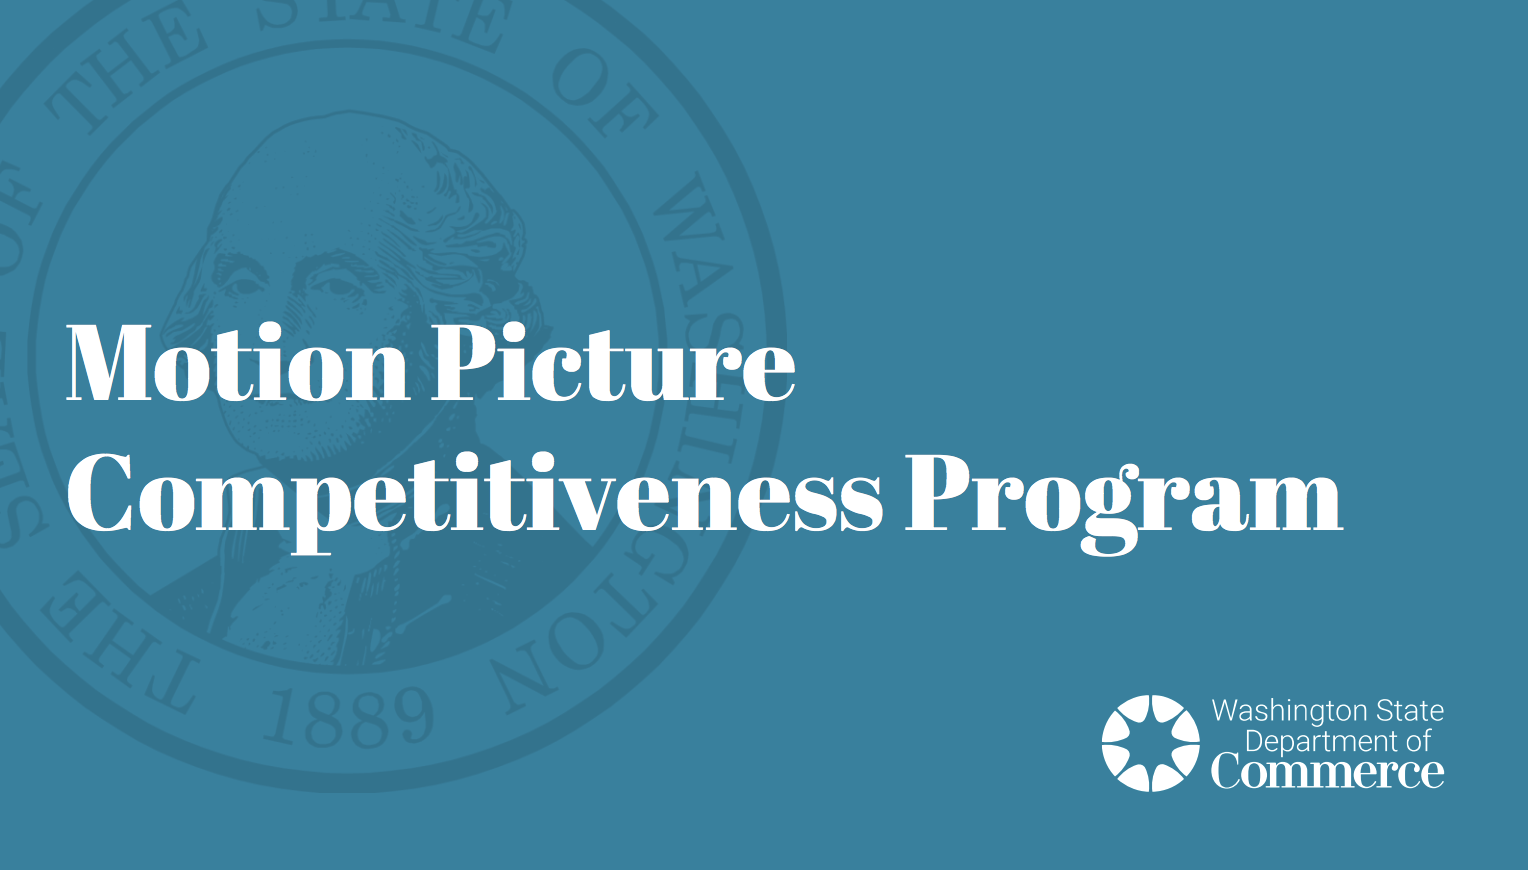 Motion Picture Competitiveness Program Report